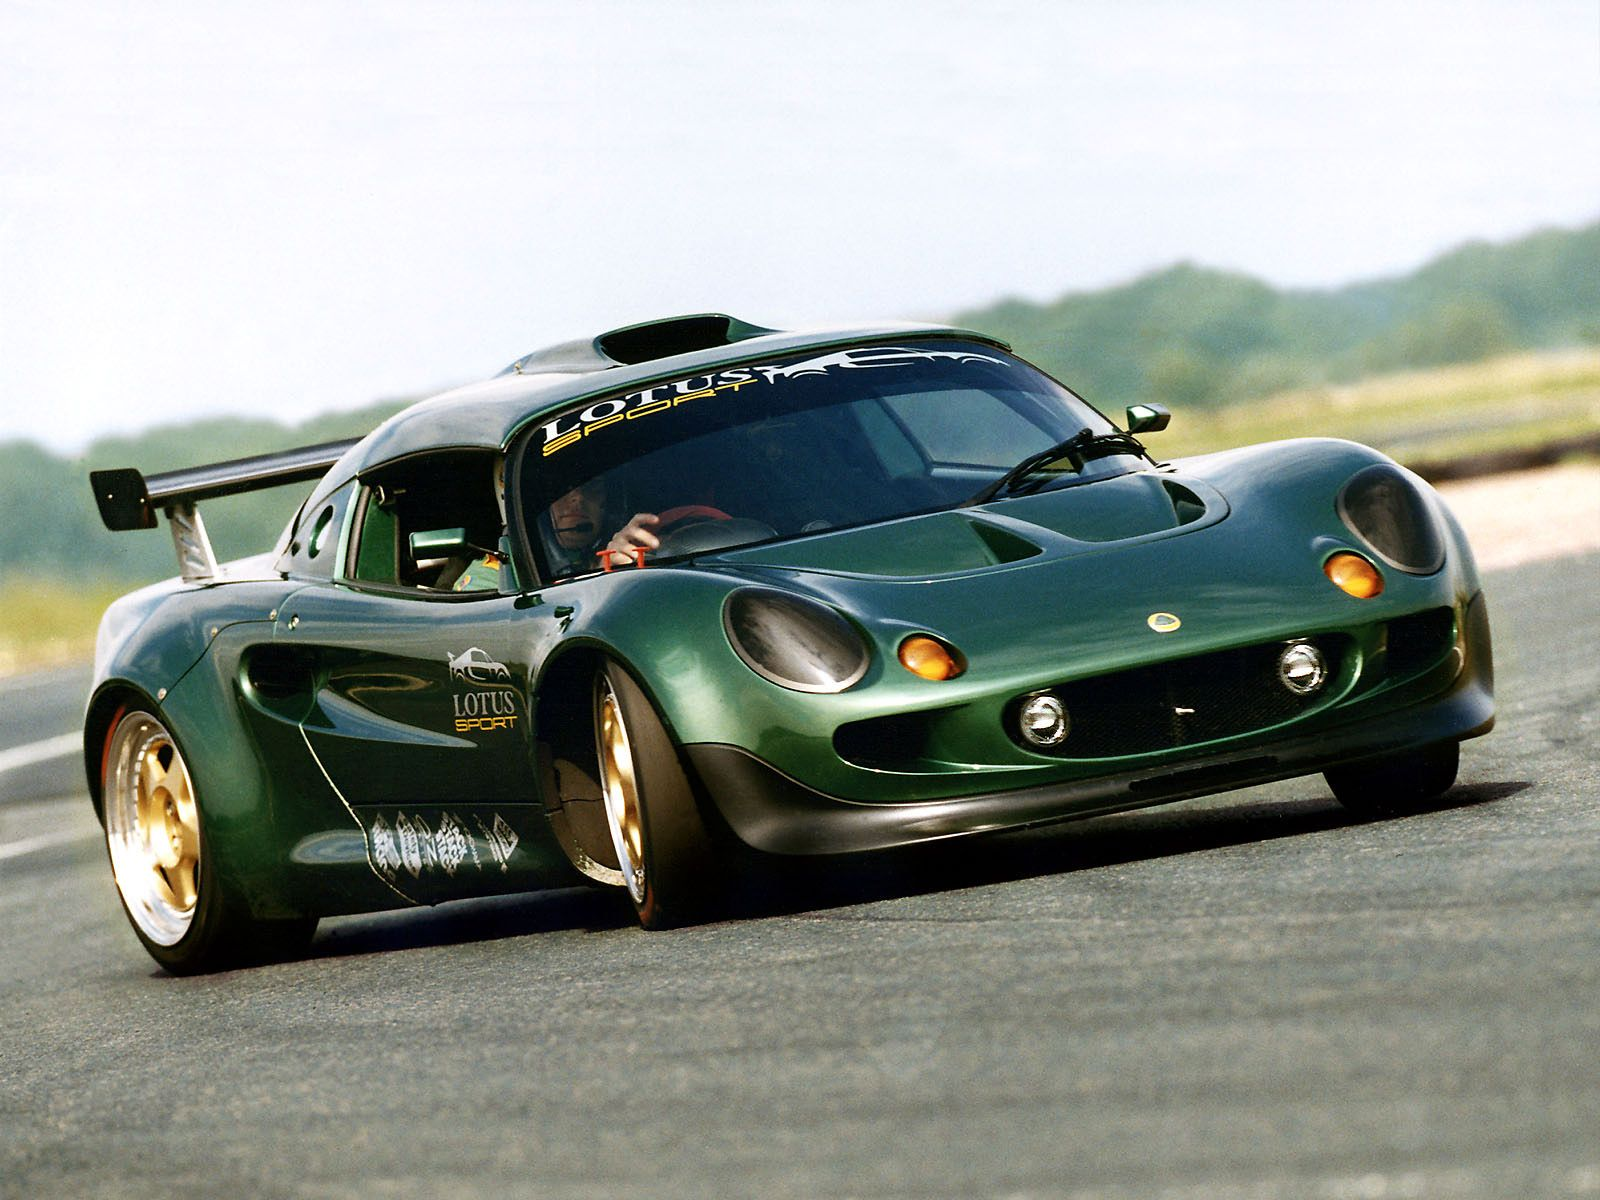 Lotus Elise 2000 Sports Cars Pictures - car wallpapers information ...